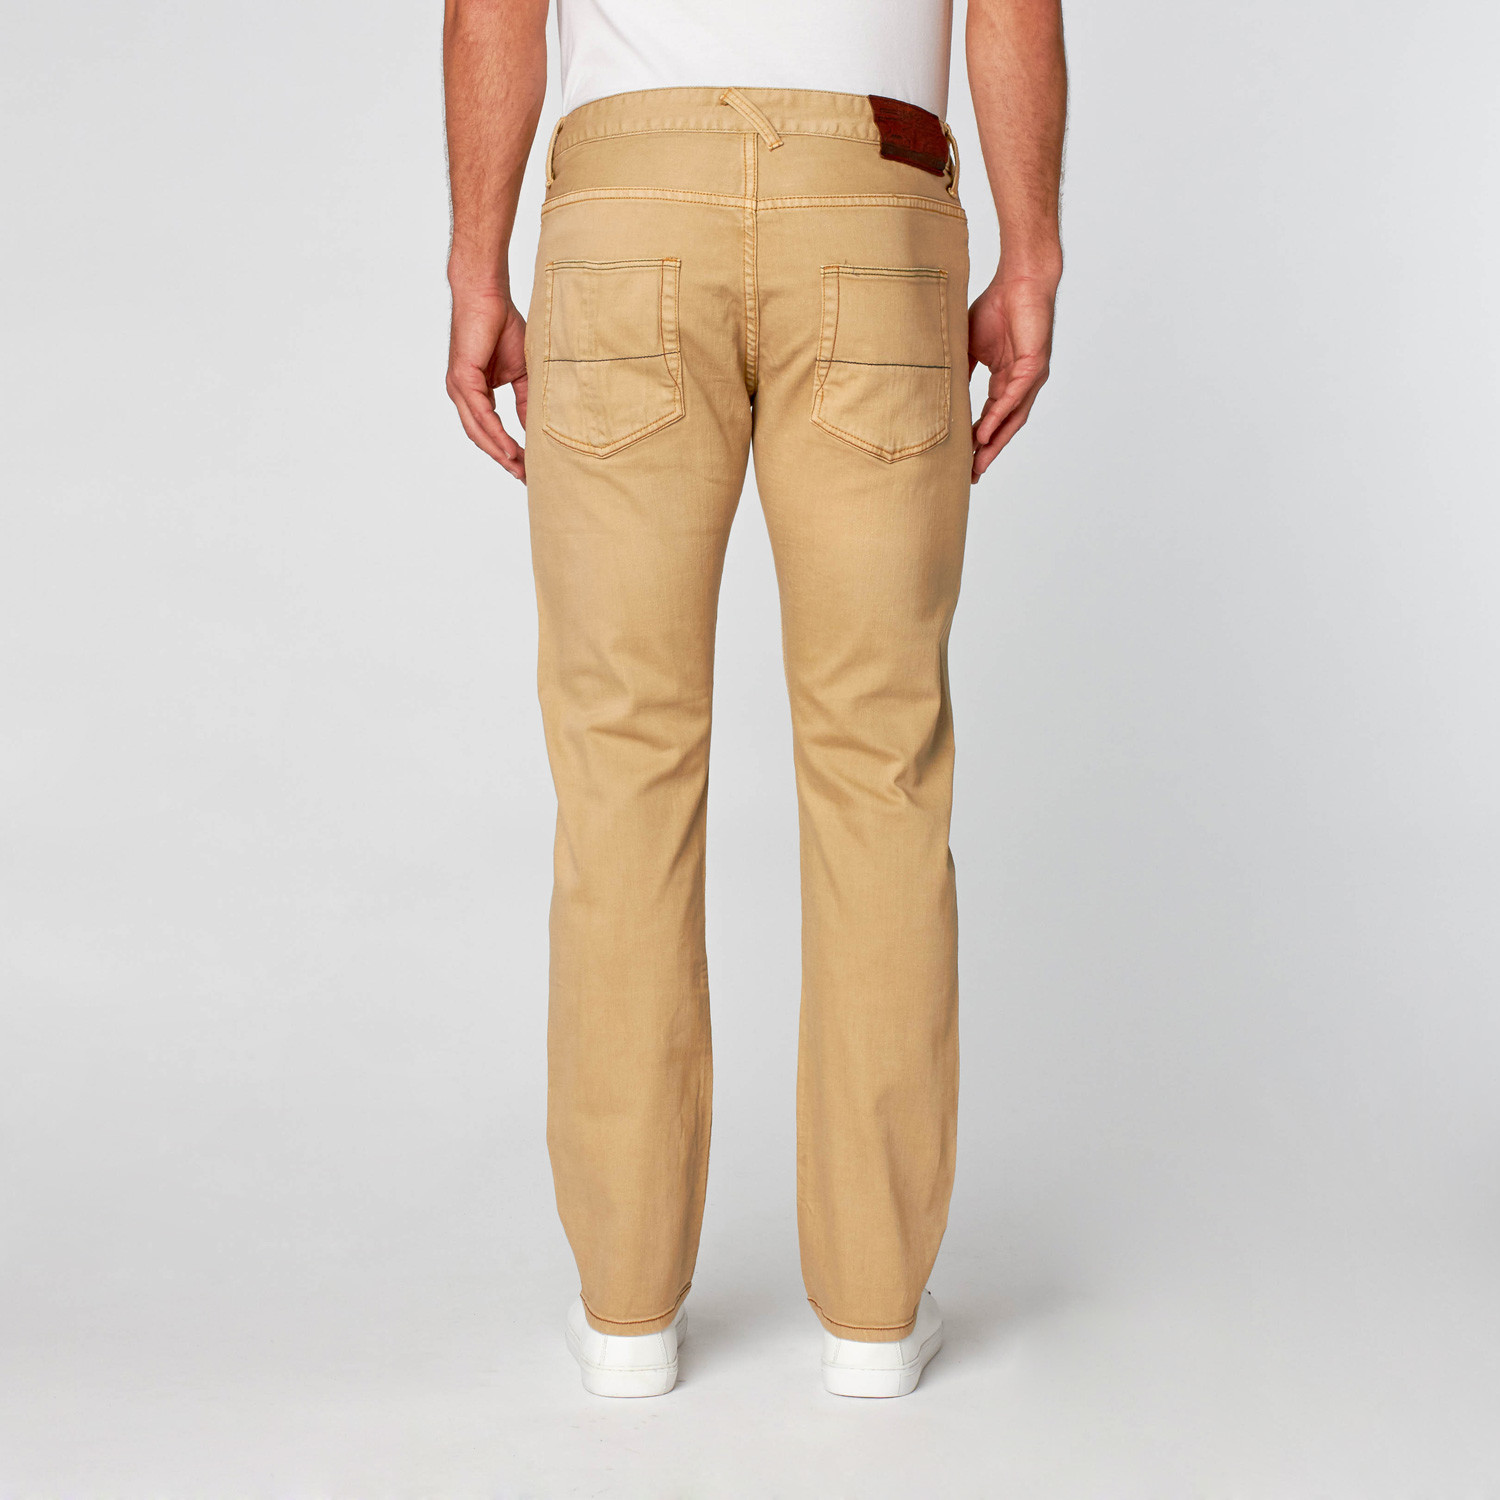 eight penny nails classic 5-pocket